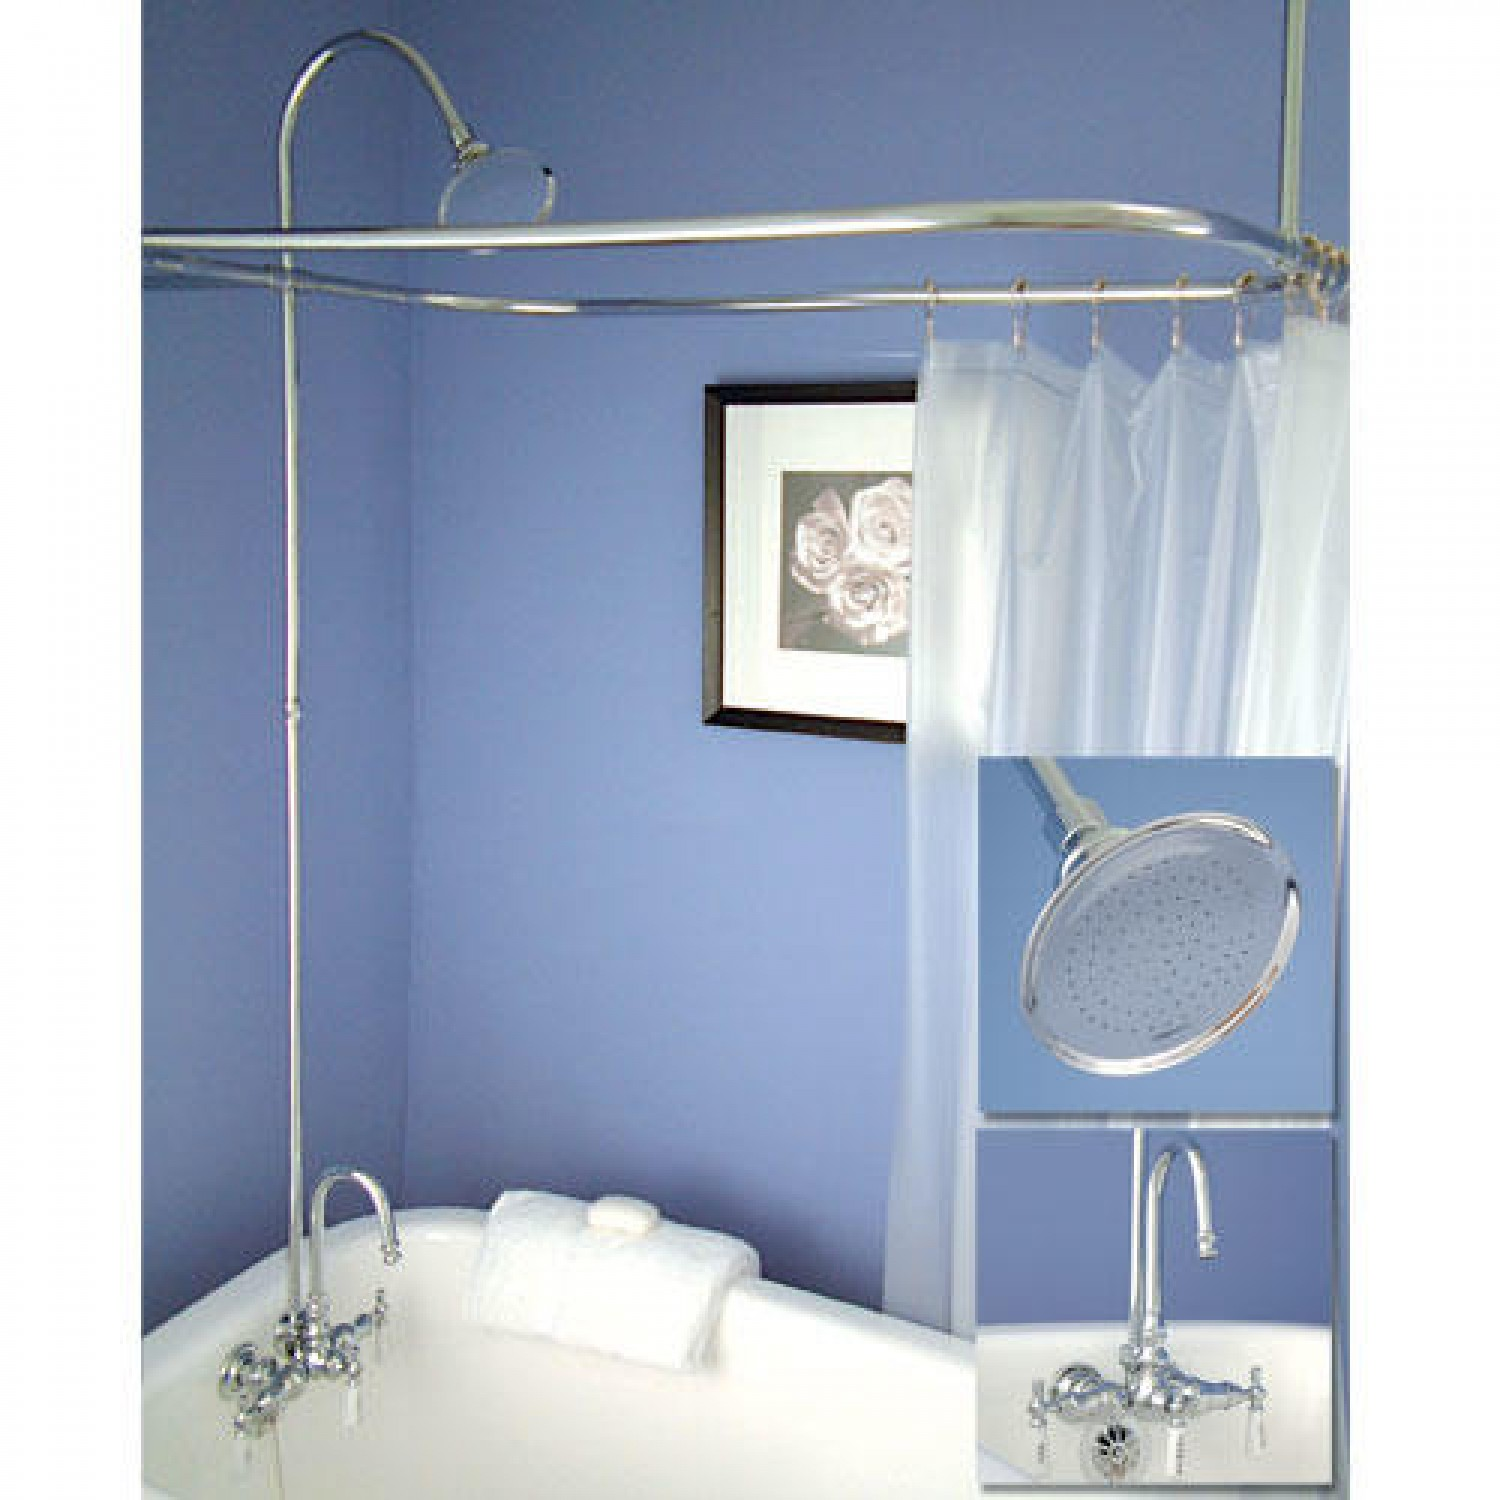 Ideas Set Up Oval Shower Curtain Rod Royals Courage